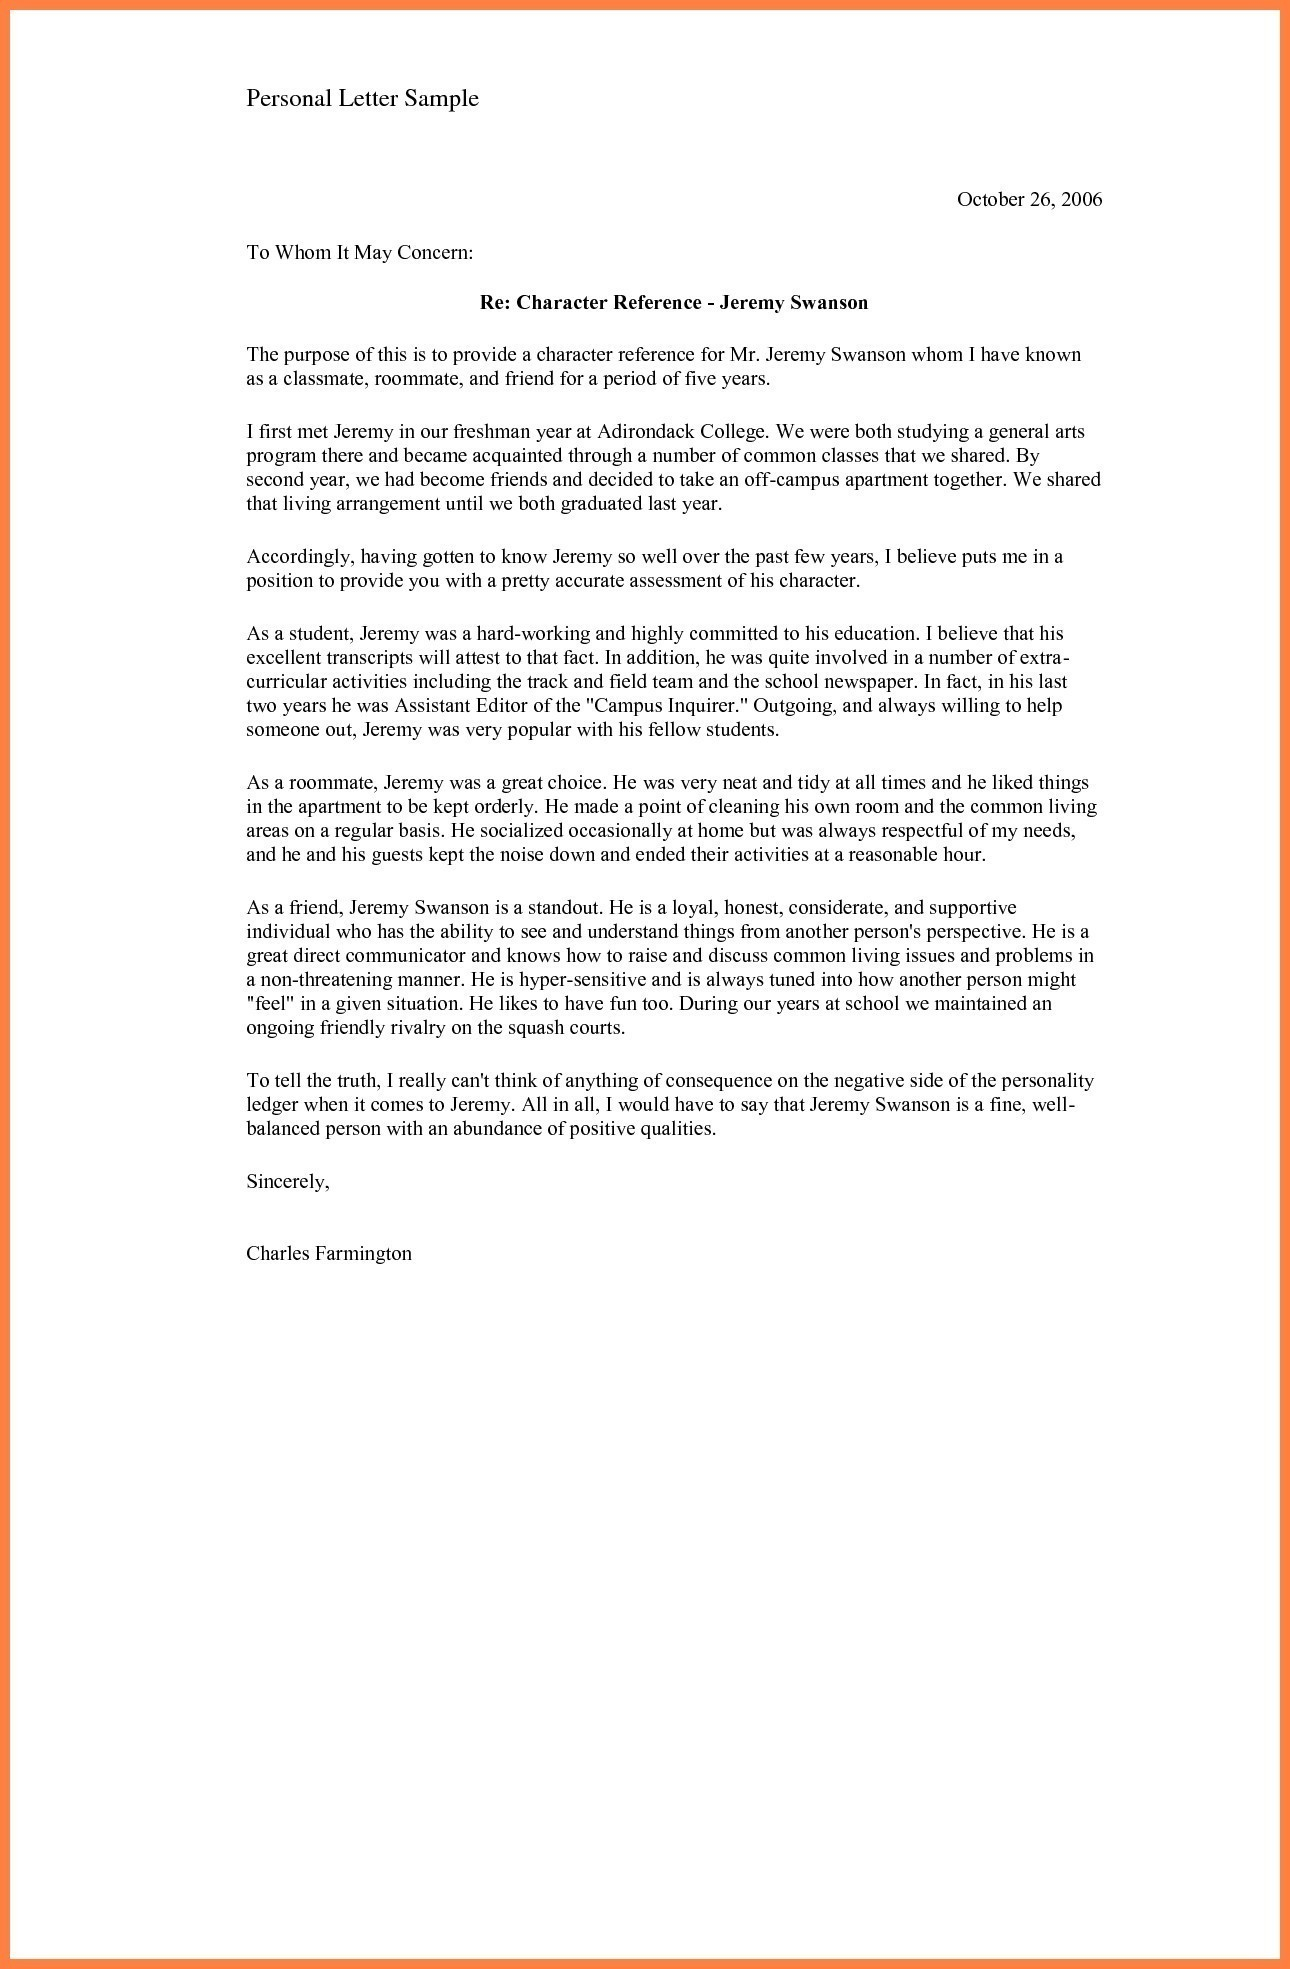 Personal Letter Of Recommendation For A Friend Template Samples